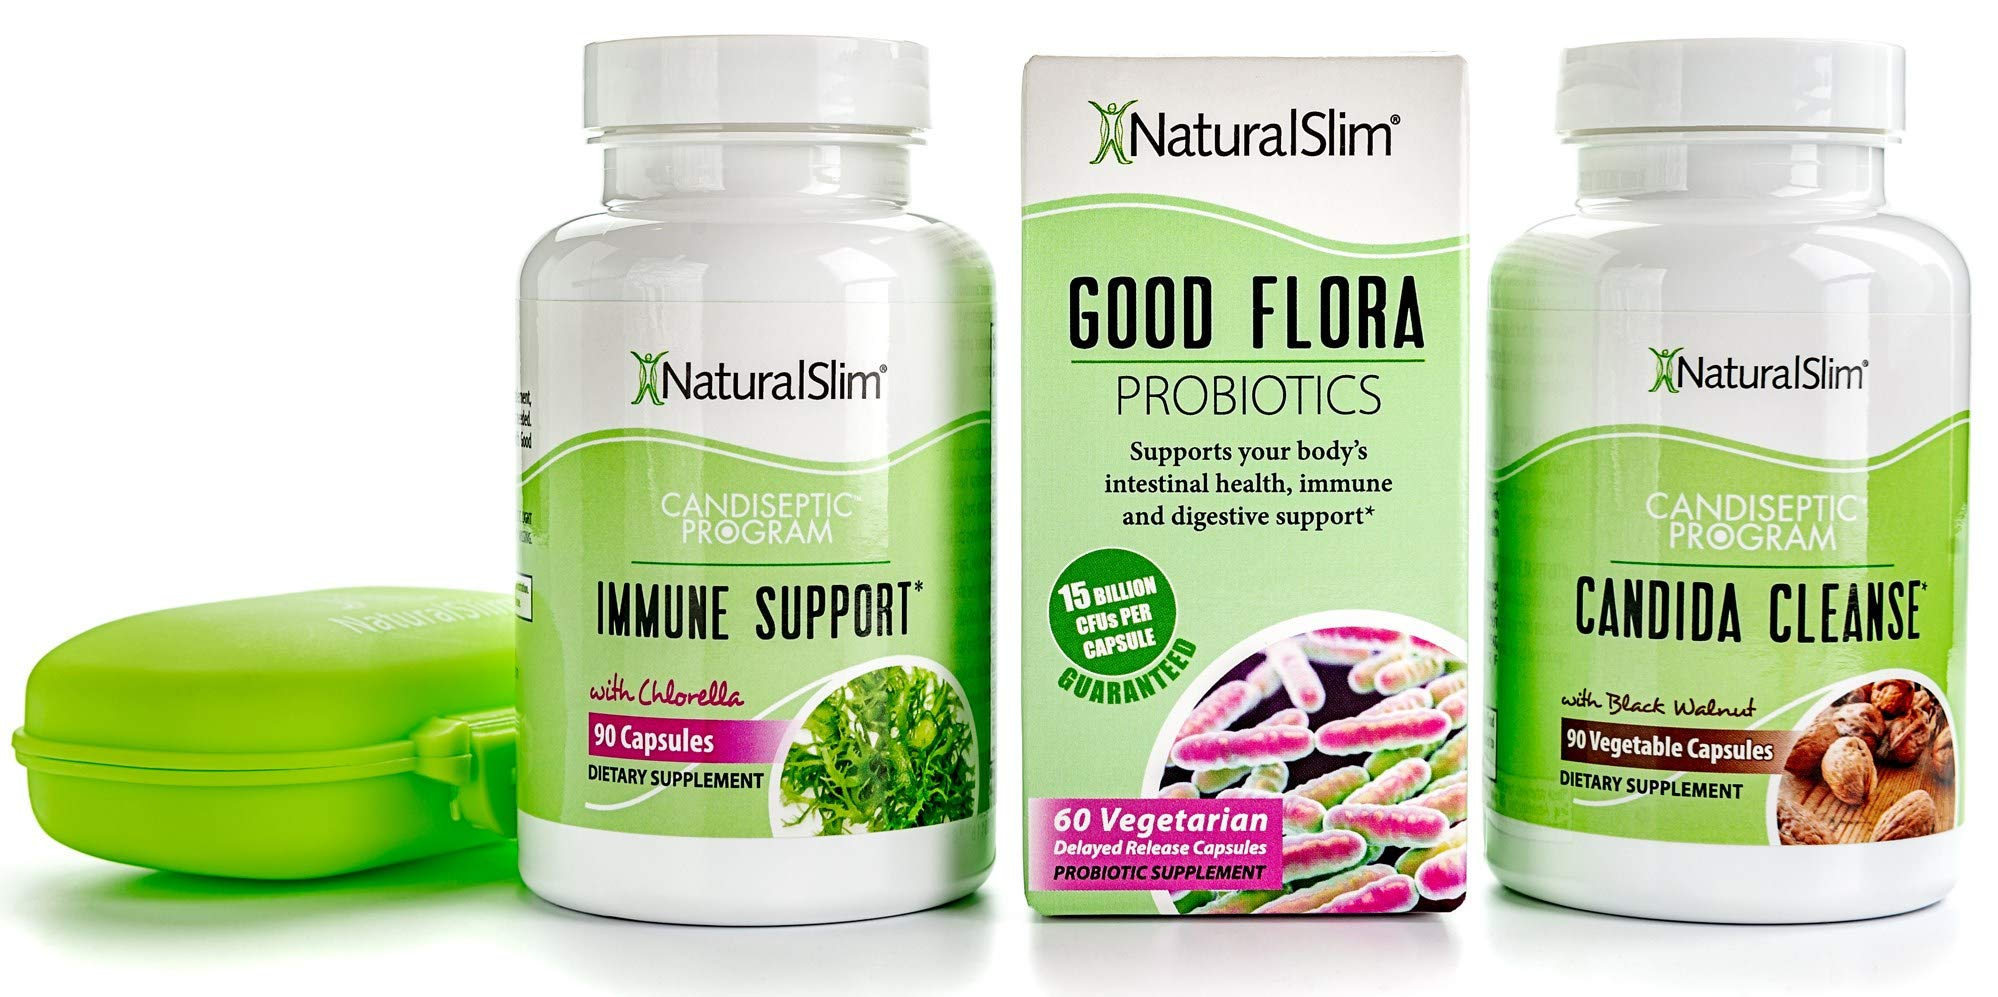 NaturalSlim Candida Albicans Treatment, Formulated by Award Winning Metabolism and Weight Loss Specialist- Full Detox and Cleanse of Fungus for Health and Weight Loss Aid by RelaxSlim